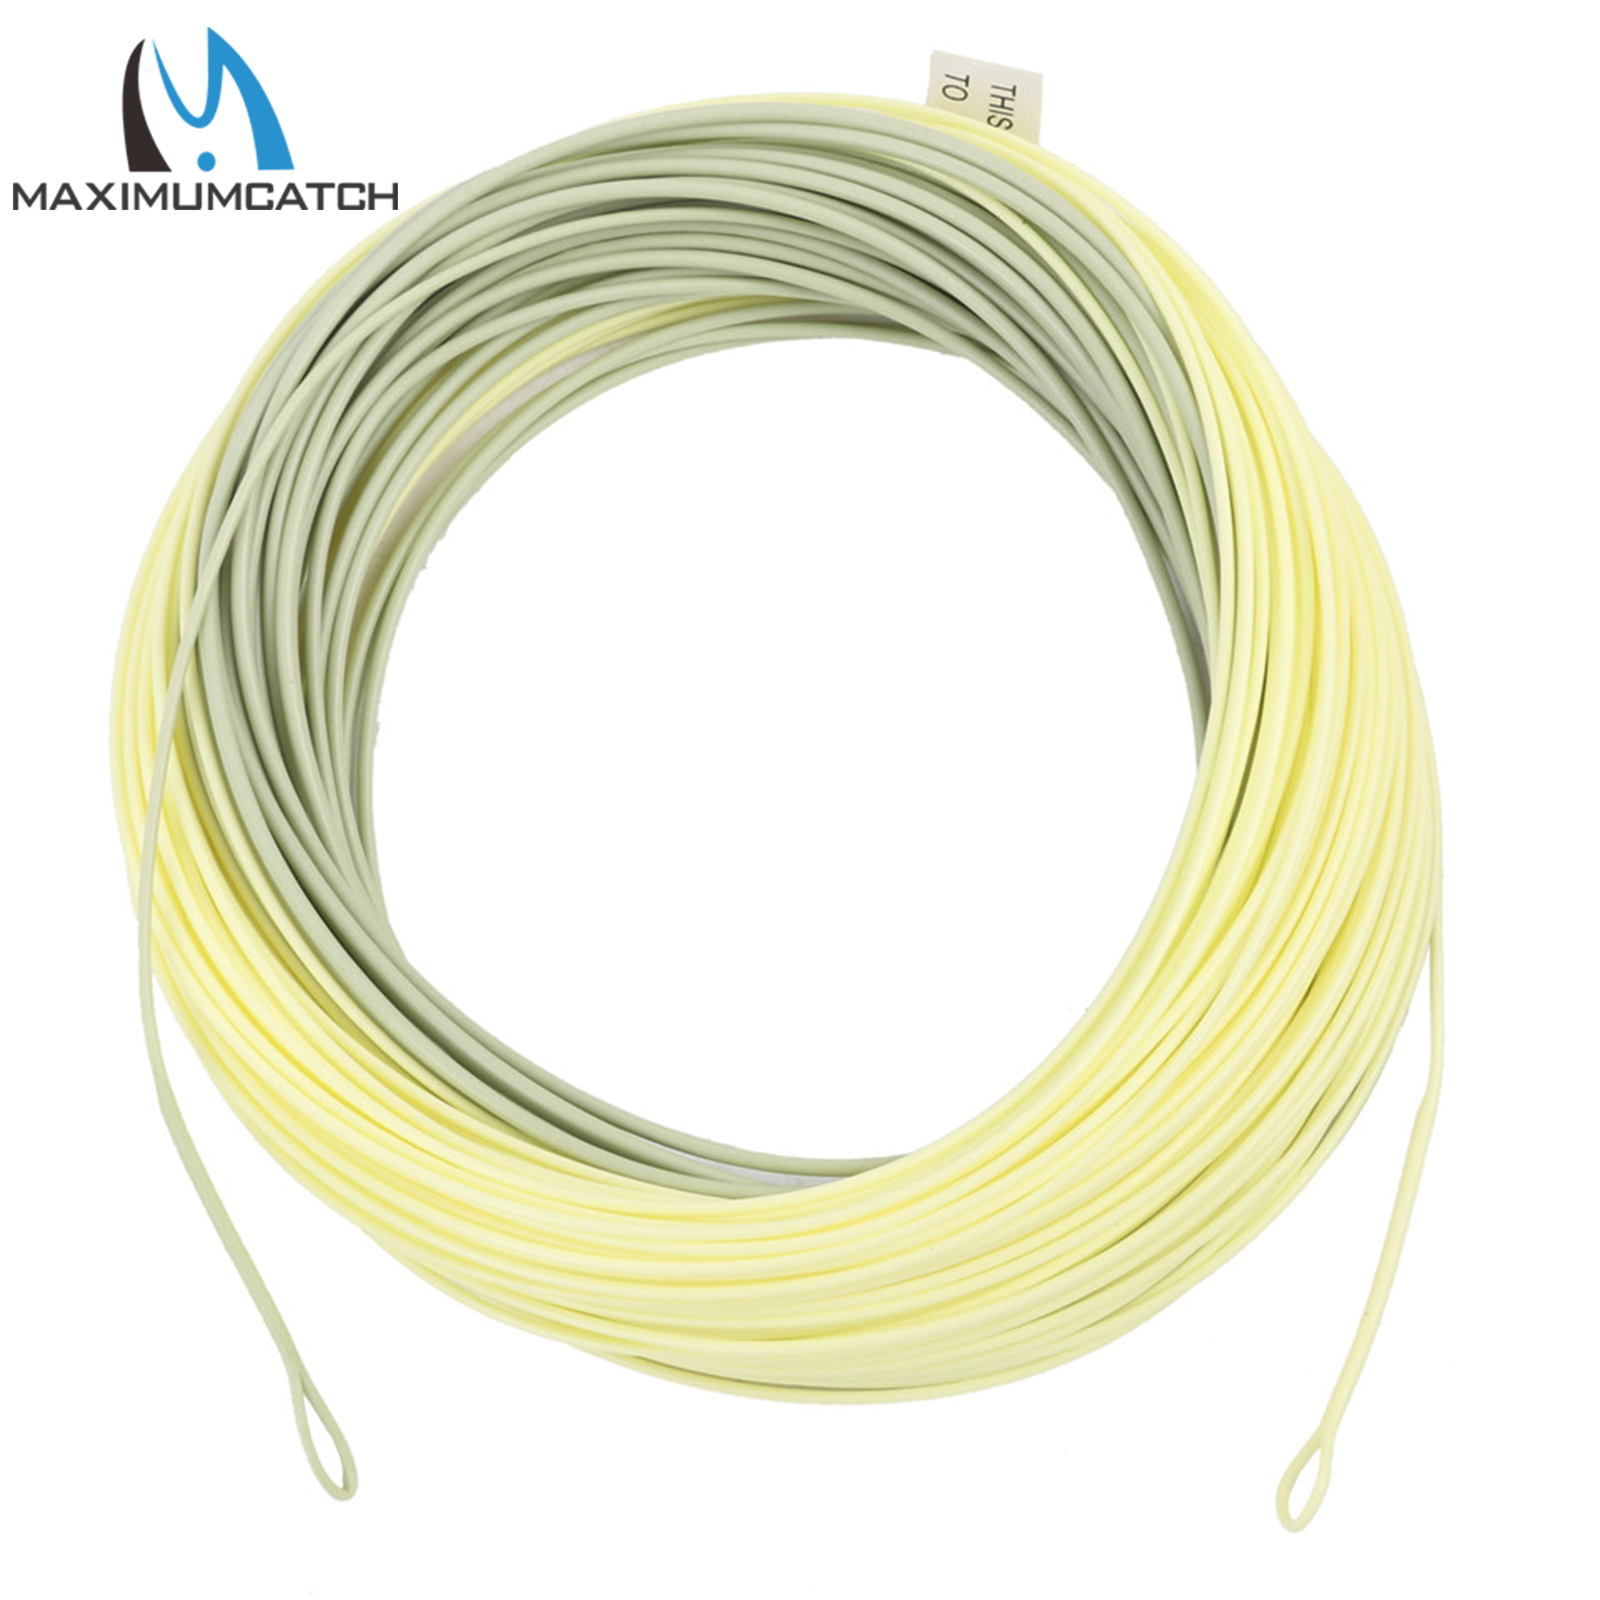 Maximumcatch Outbound Short Fly Fishing Line 8/9/10wt 100FT Moss/Lvory Color Weight Forward Fly Line With 2 Welded Loops